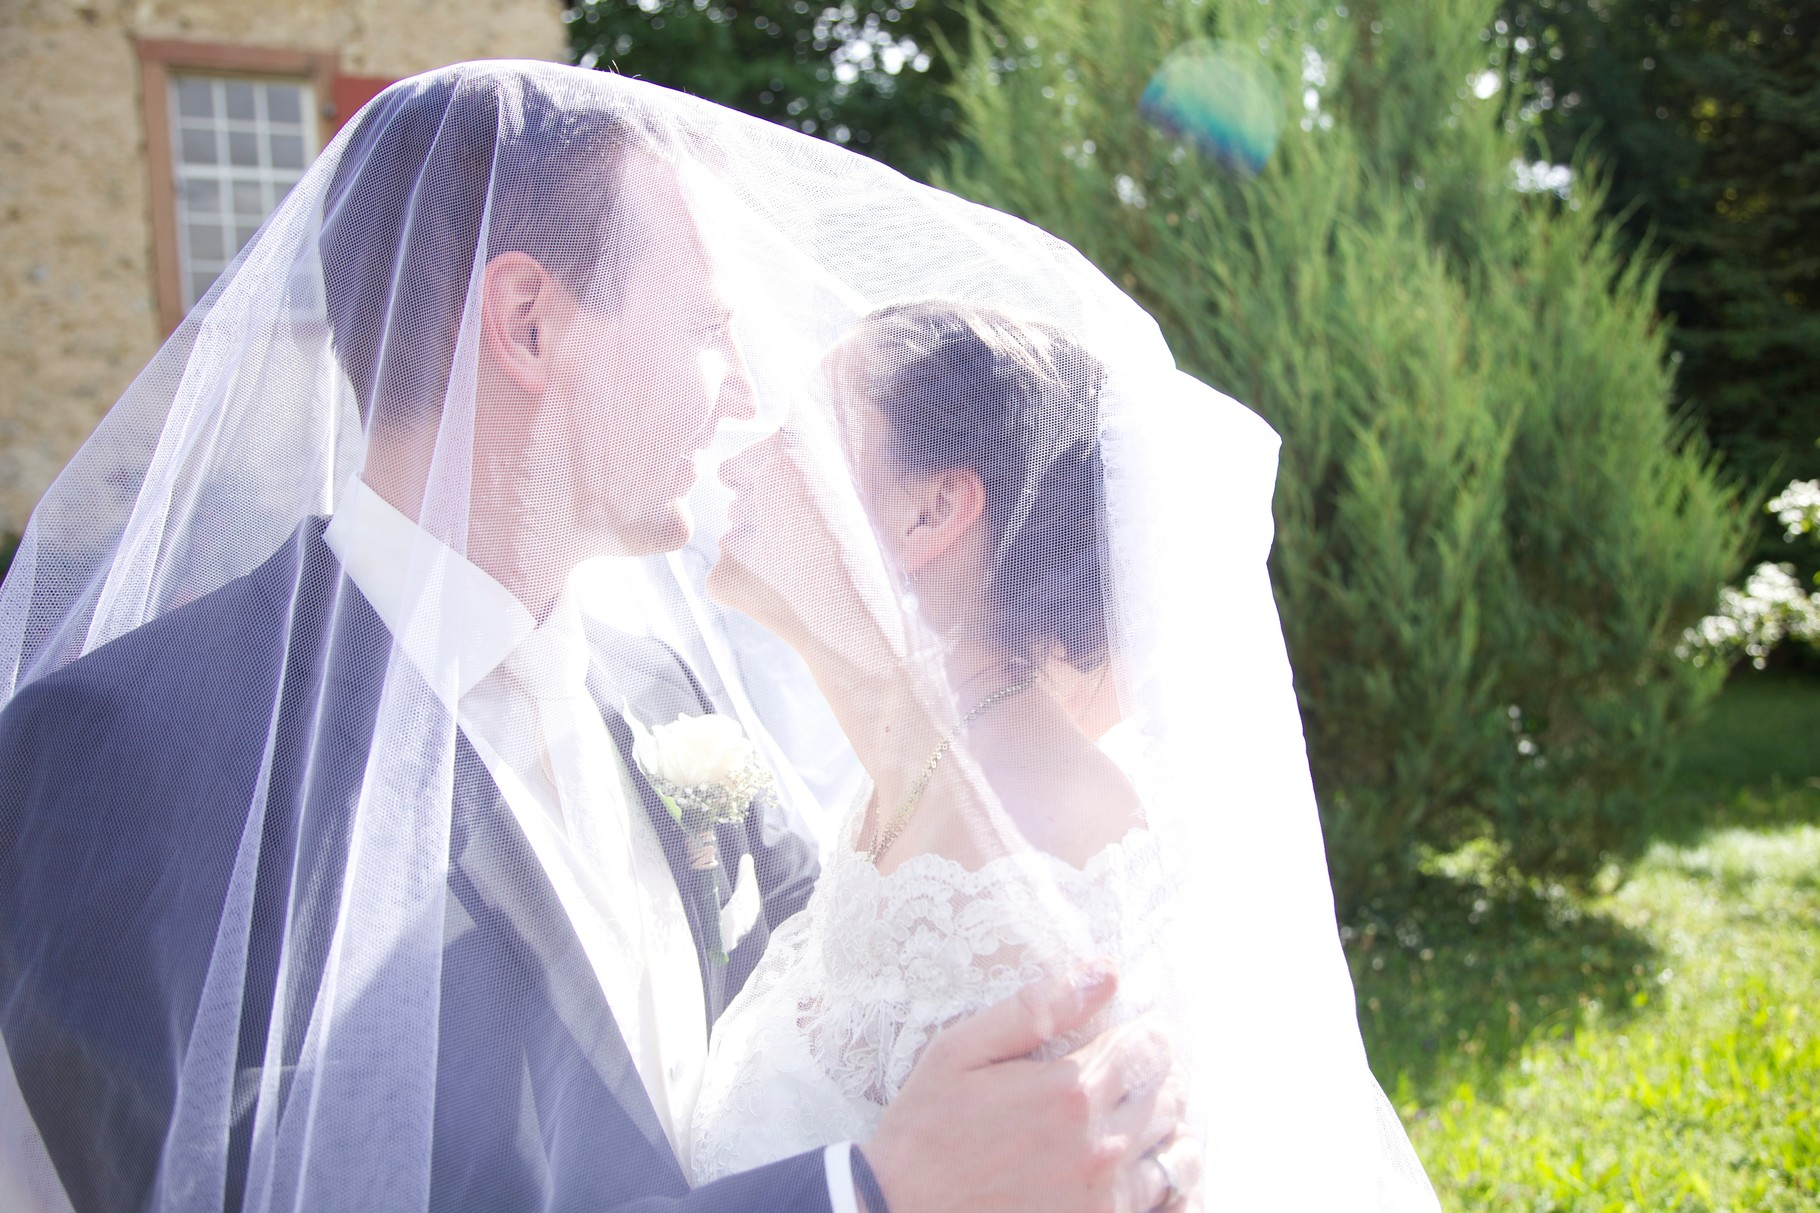 Events/ Wedding/ A&C, July 2014, Germany